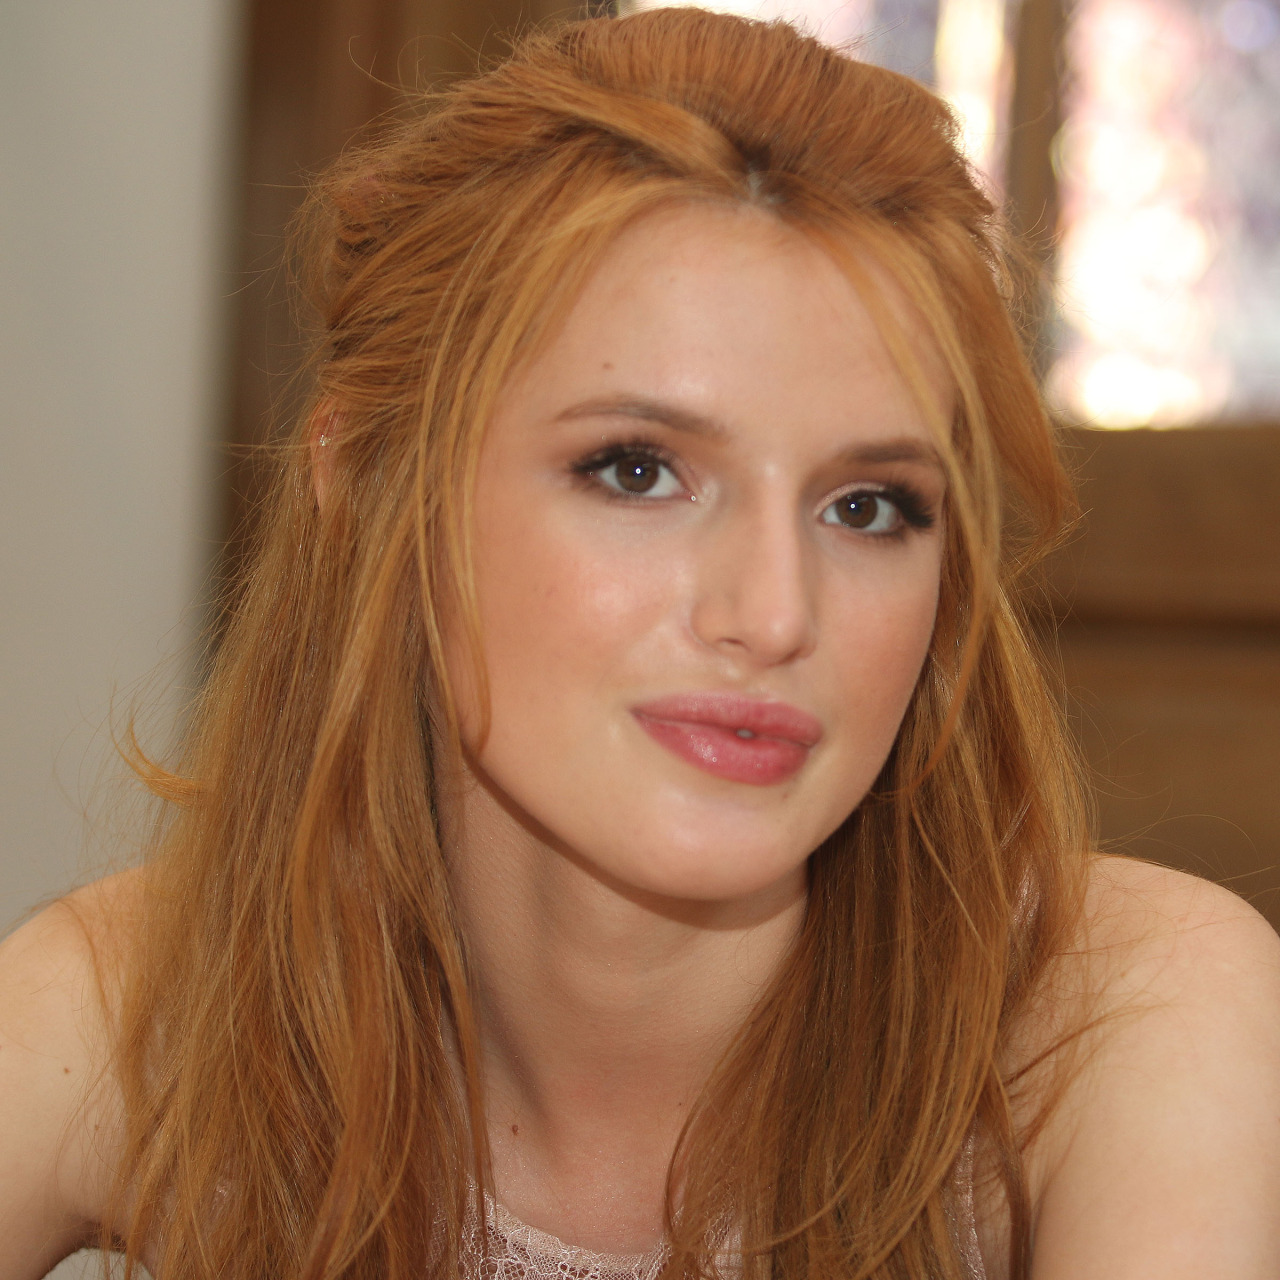 Bella Thorne Nude For The Film Lolita nude (94 pics)